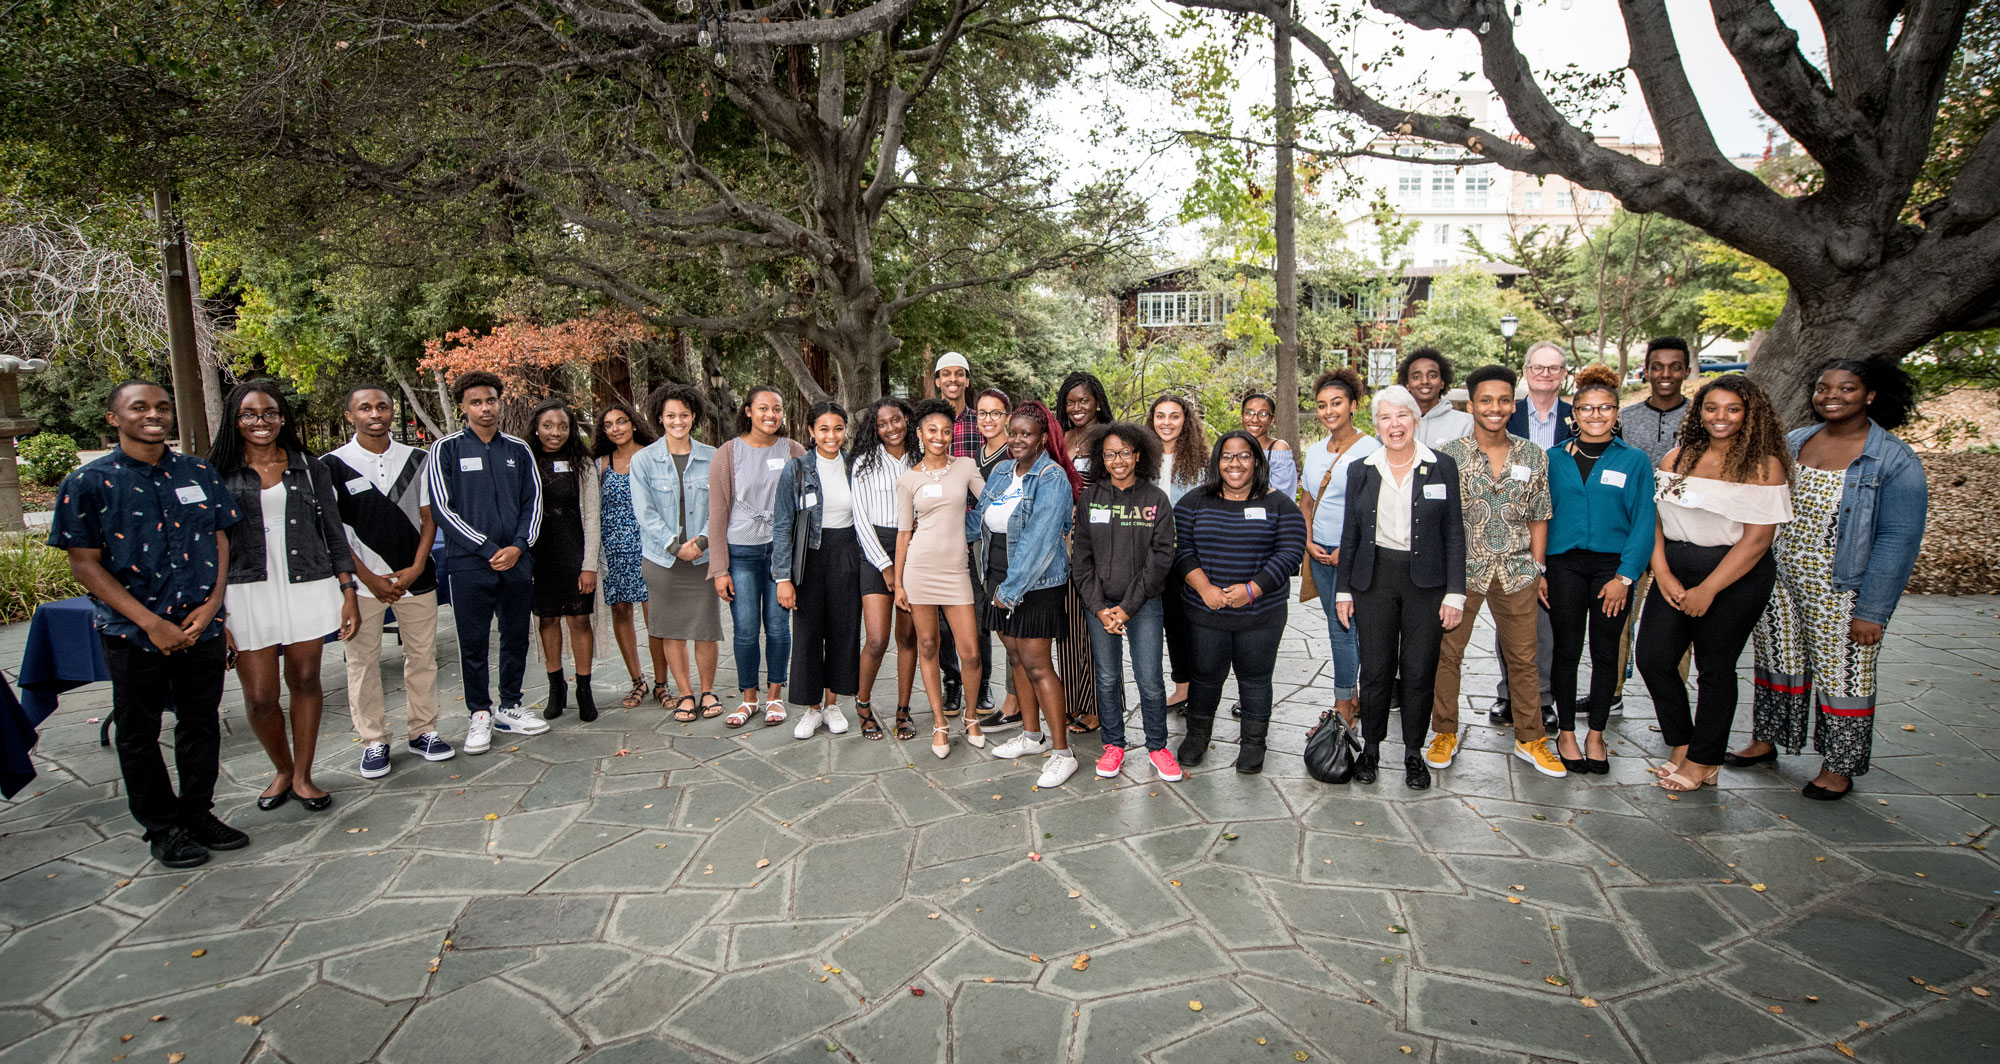 Photo of nearly 30 proud scholarship recipients on a stone walkway with the chancellor and other leaders.